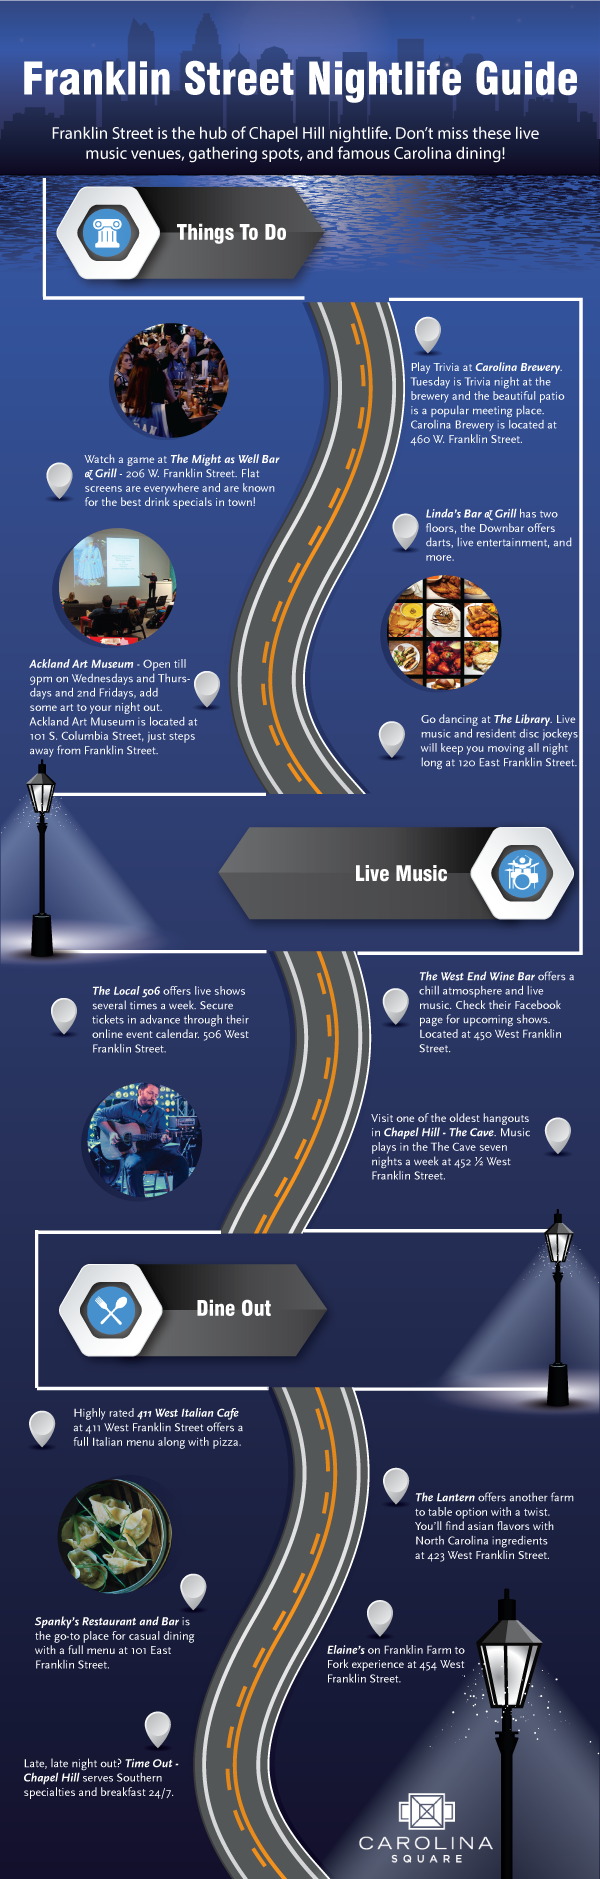 Franklin Street Nightlife Guide Infographic